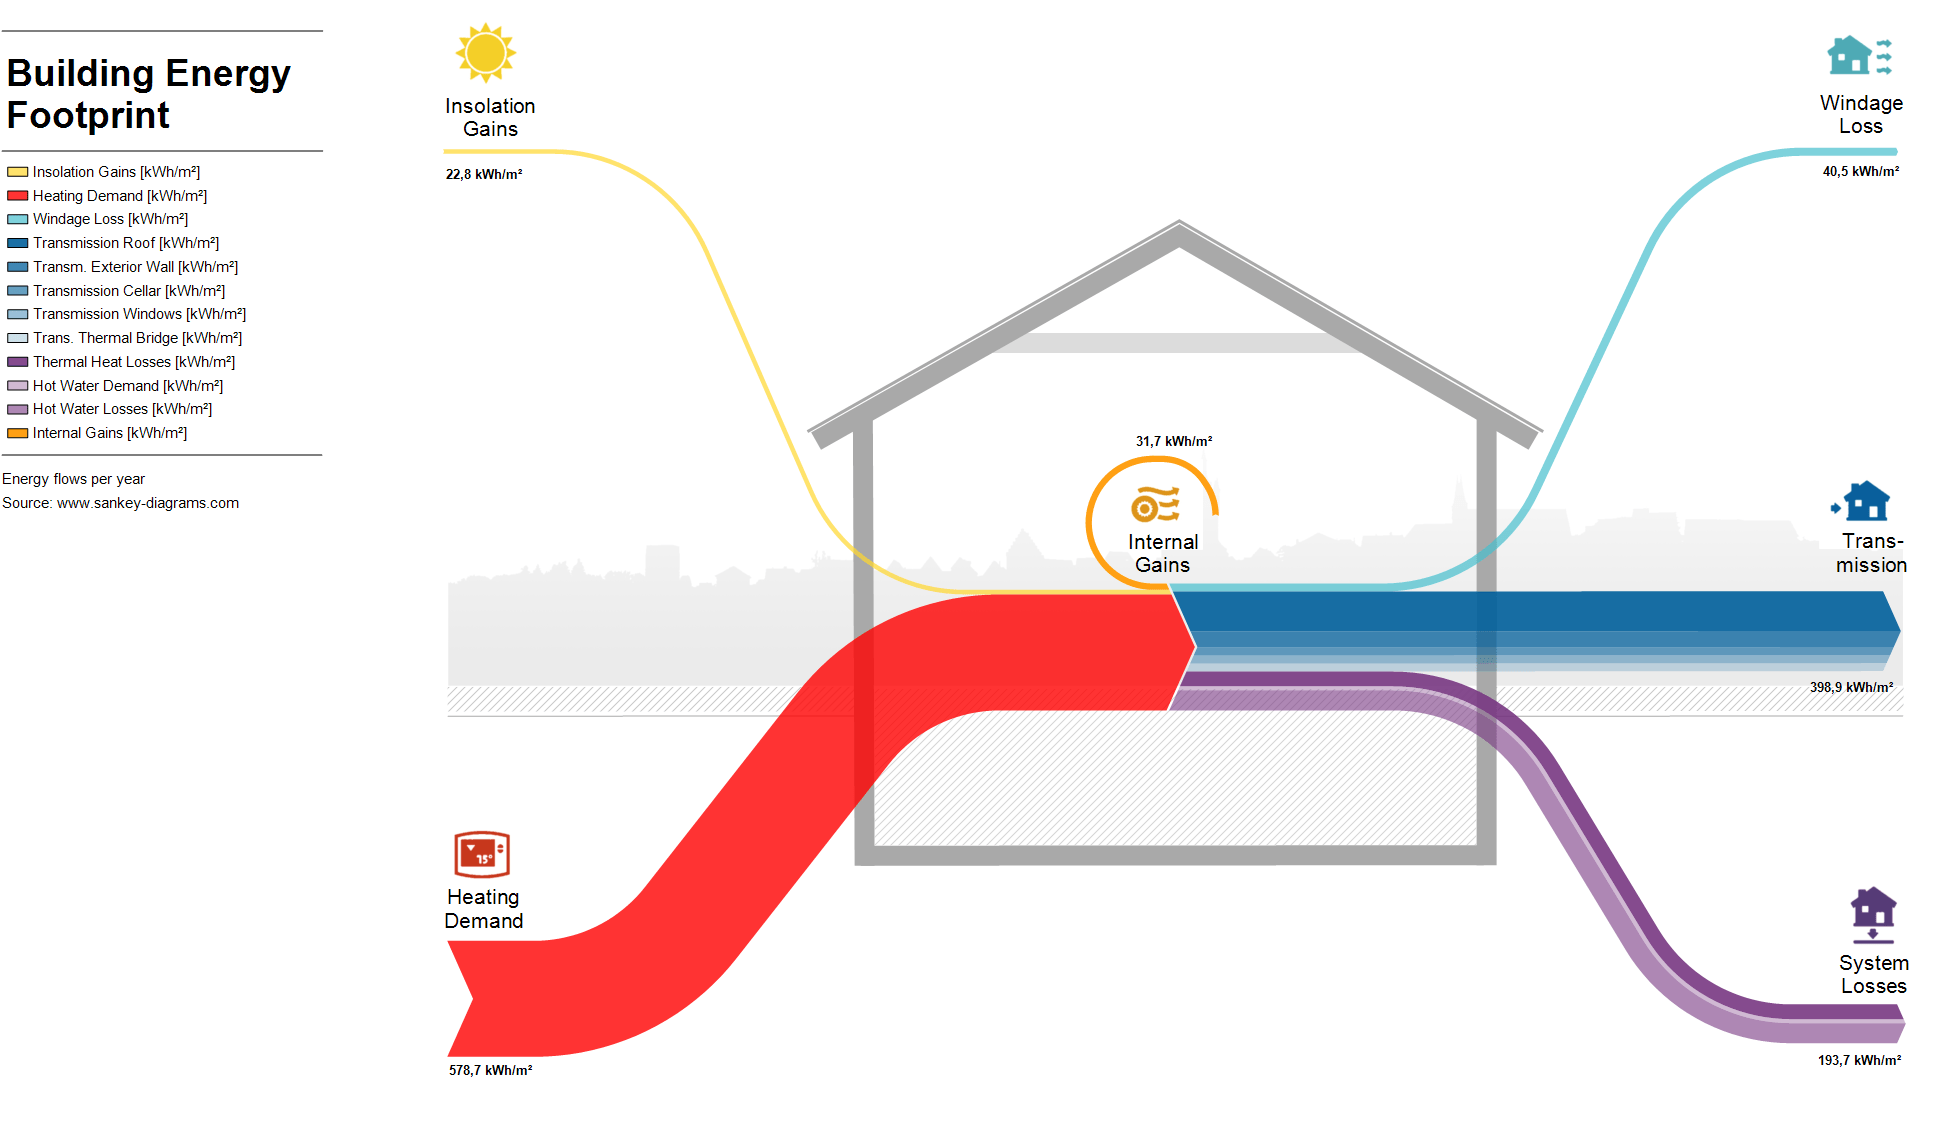 sankey diagram for solar power wiring a smoke detector showing input and losses through building